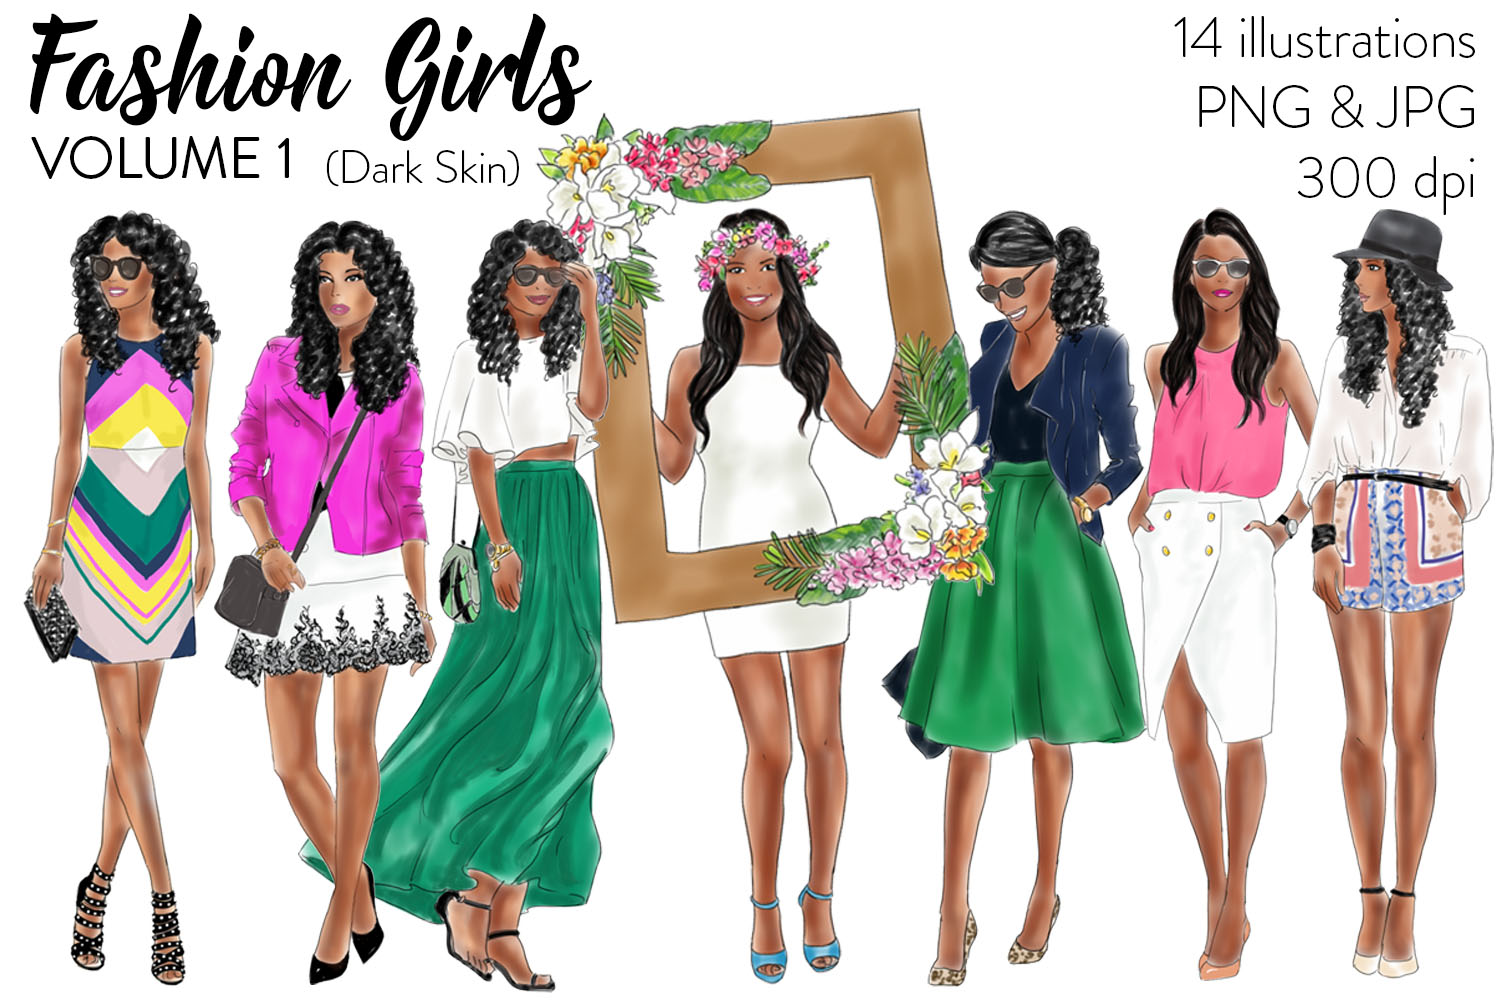 Fashion Girls - Volume 1 ( Dark skin) fashion illustration clipart example image 1